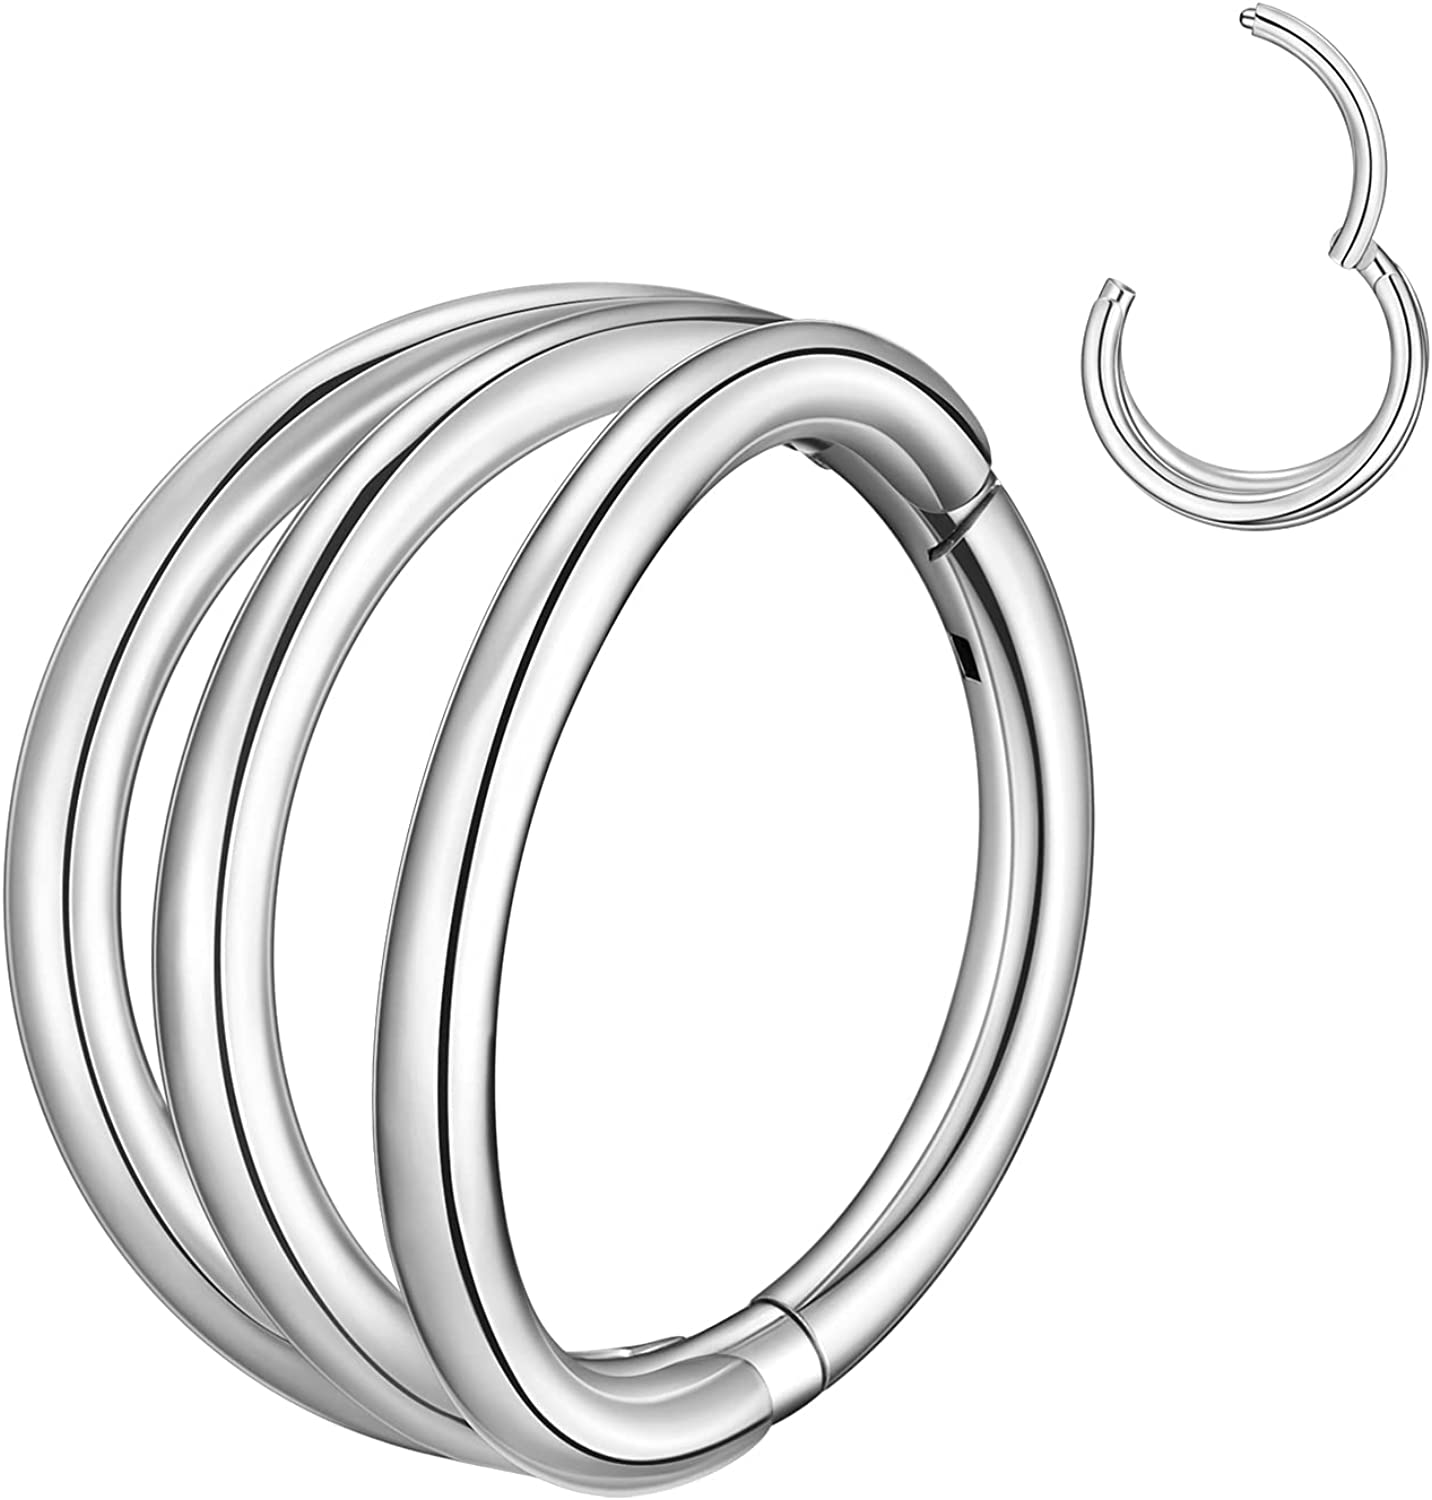 16G 18G Double Triple Open Stacked Hinged Segment Nose Rings Hoop Septum Clicker, 316L Surgical Steel Cartilage Earrings Conch Daith Helix Rook Ear Lobe Piercing Jewelry, Diameter 8mm 10mm 12mm